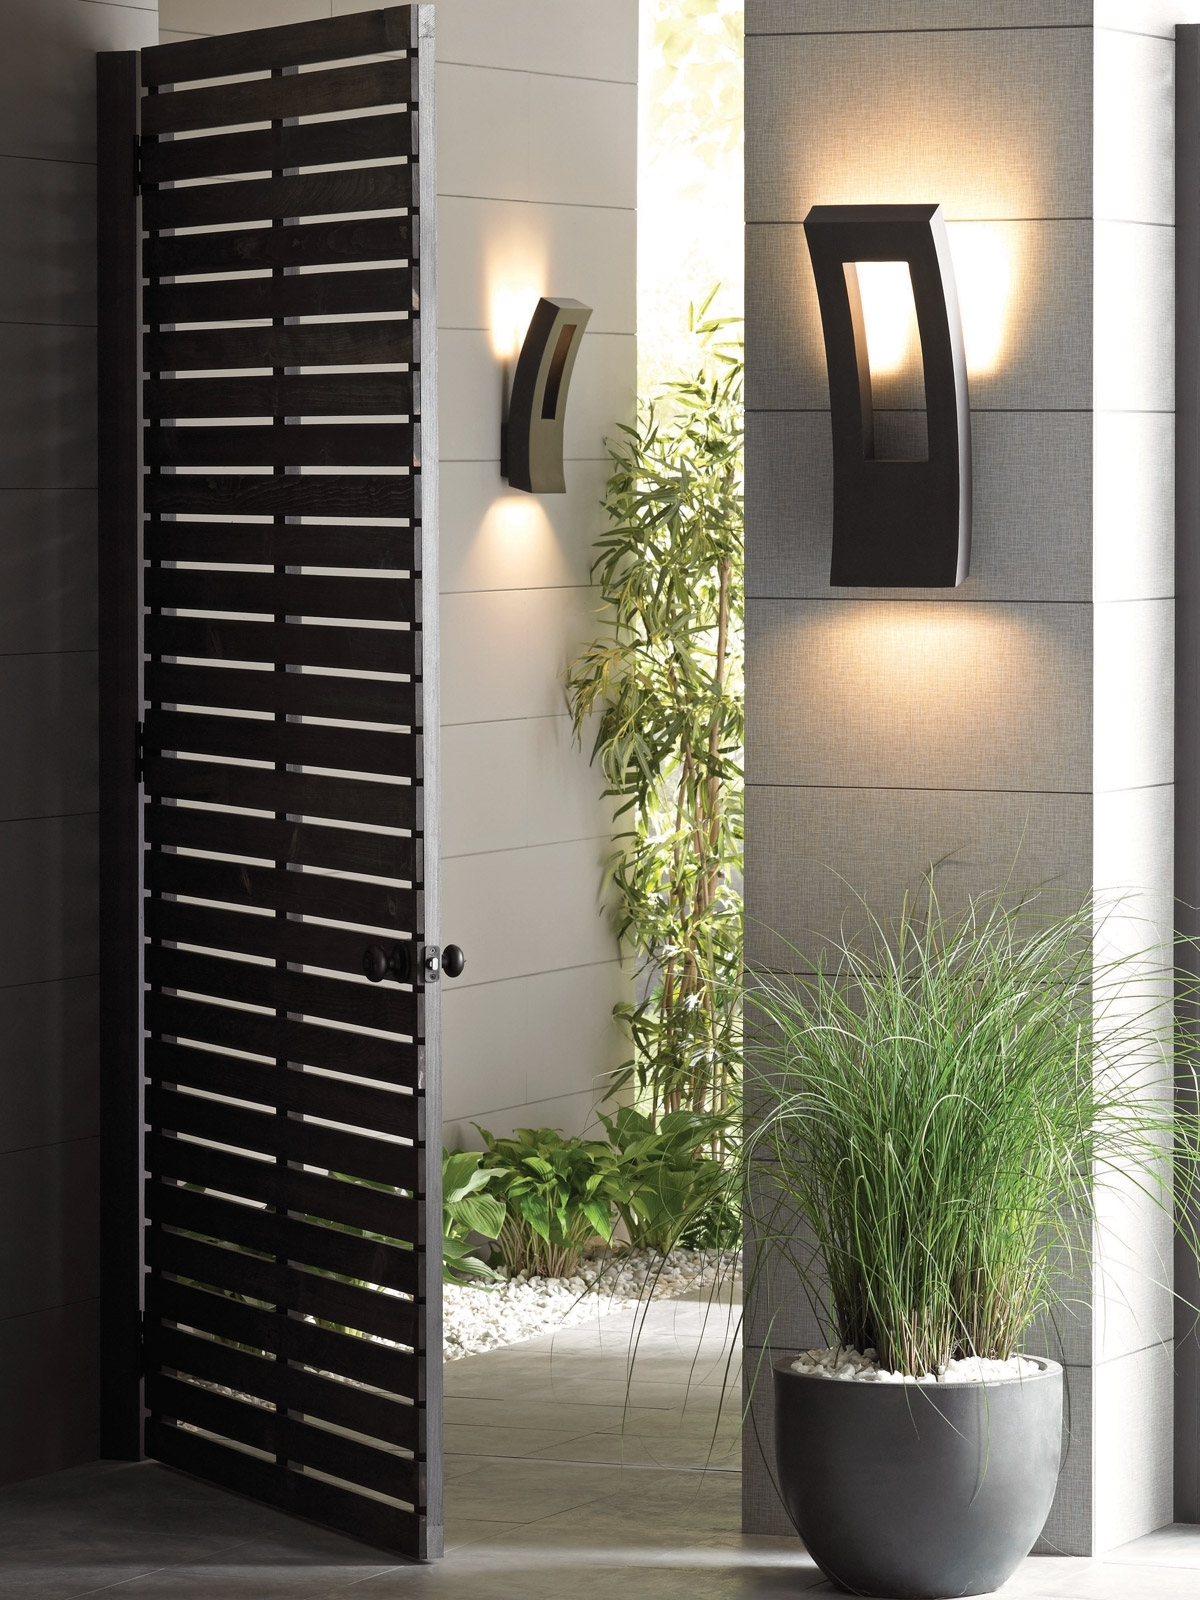 Personable Modern Exterior Wall Lights Set Fresh At Kitchen Design Throughout Contemporary Outdoor Wall Lighting Sconces (#14 of 15)